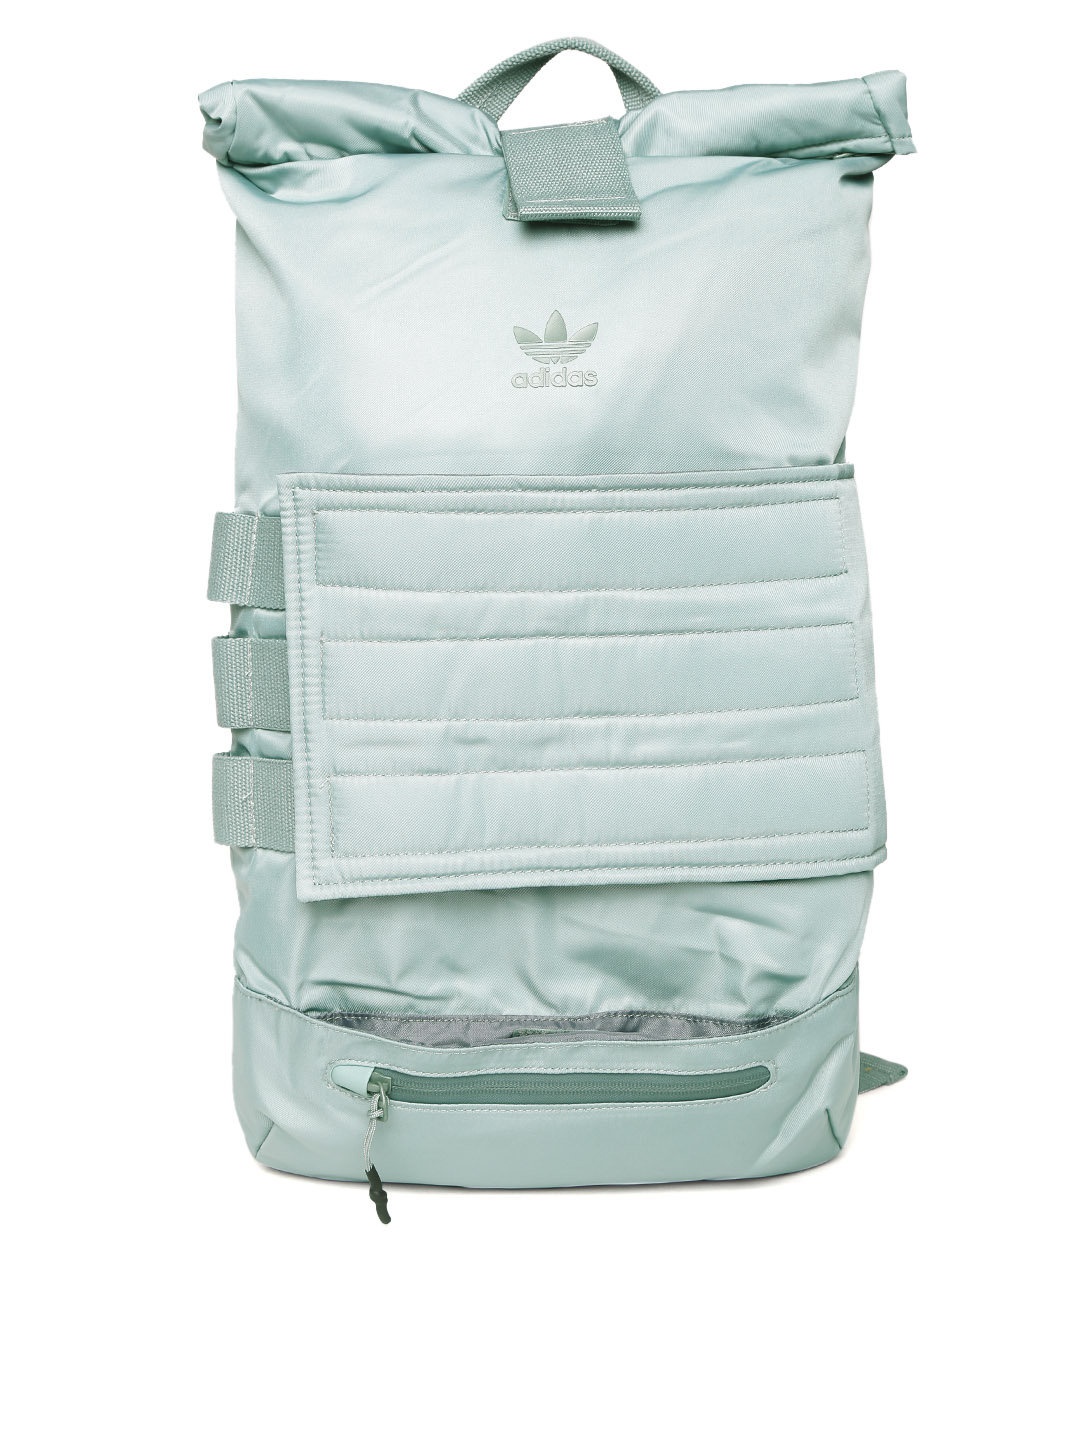 427f0310e9d Adidas originals ay9353 Women Grey Roll Up Backpack - Best Price in ...